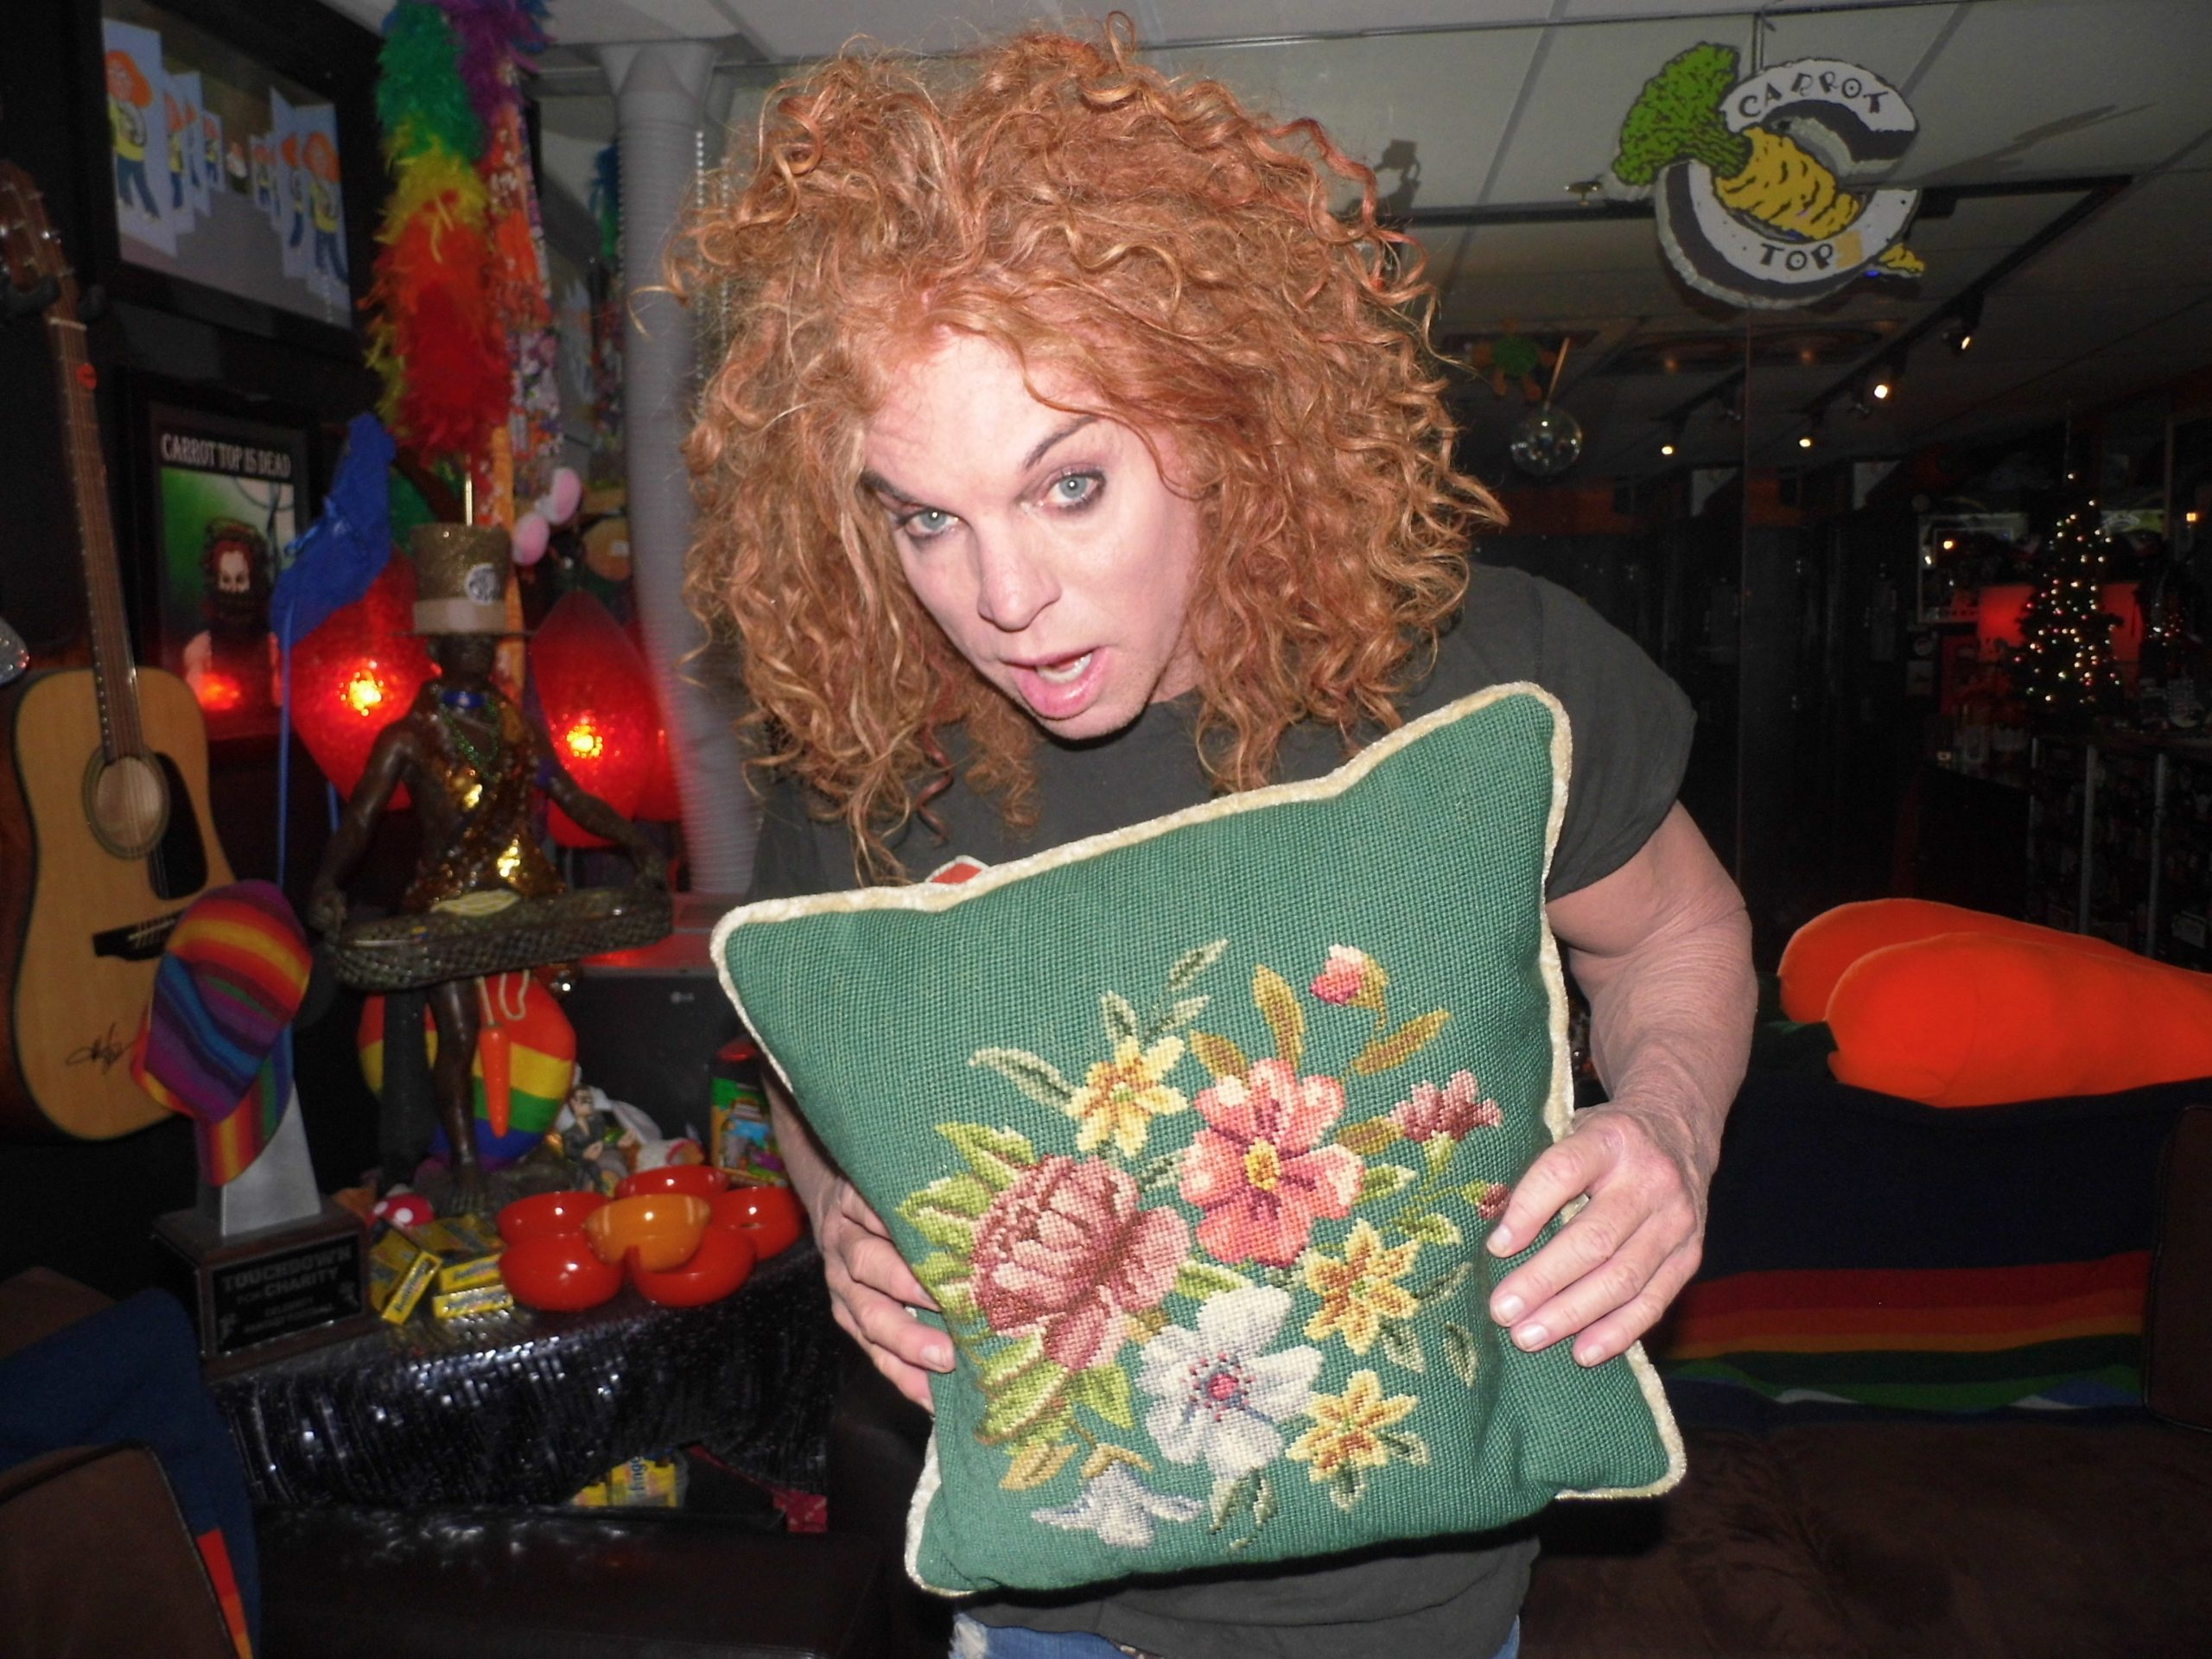 Carrot Top Pillow, Carrot Top Jerry Lewis Pillow, Jerry Lewis Pillow